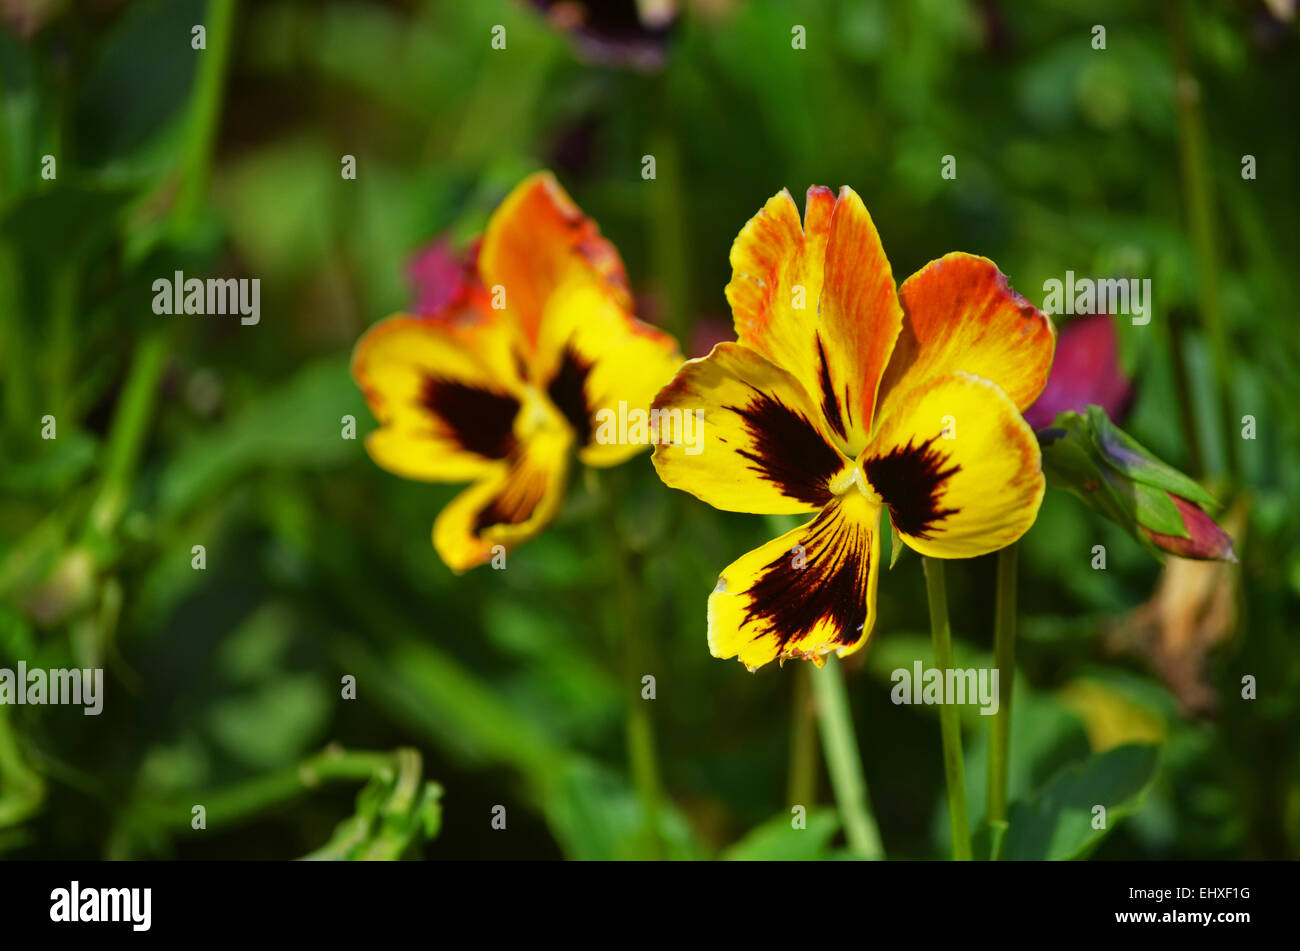 Yellow Pansy Flower At Botanical Garden In Ootytamilnaduindia